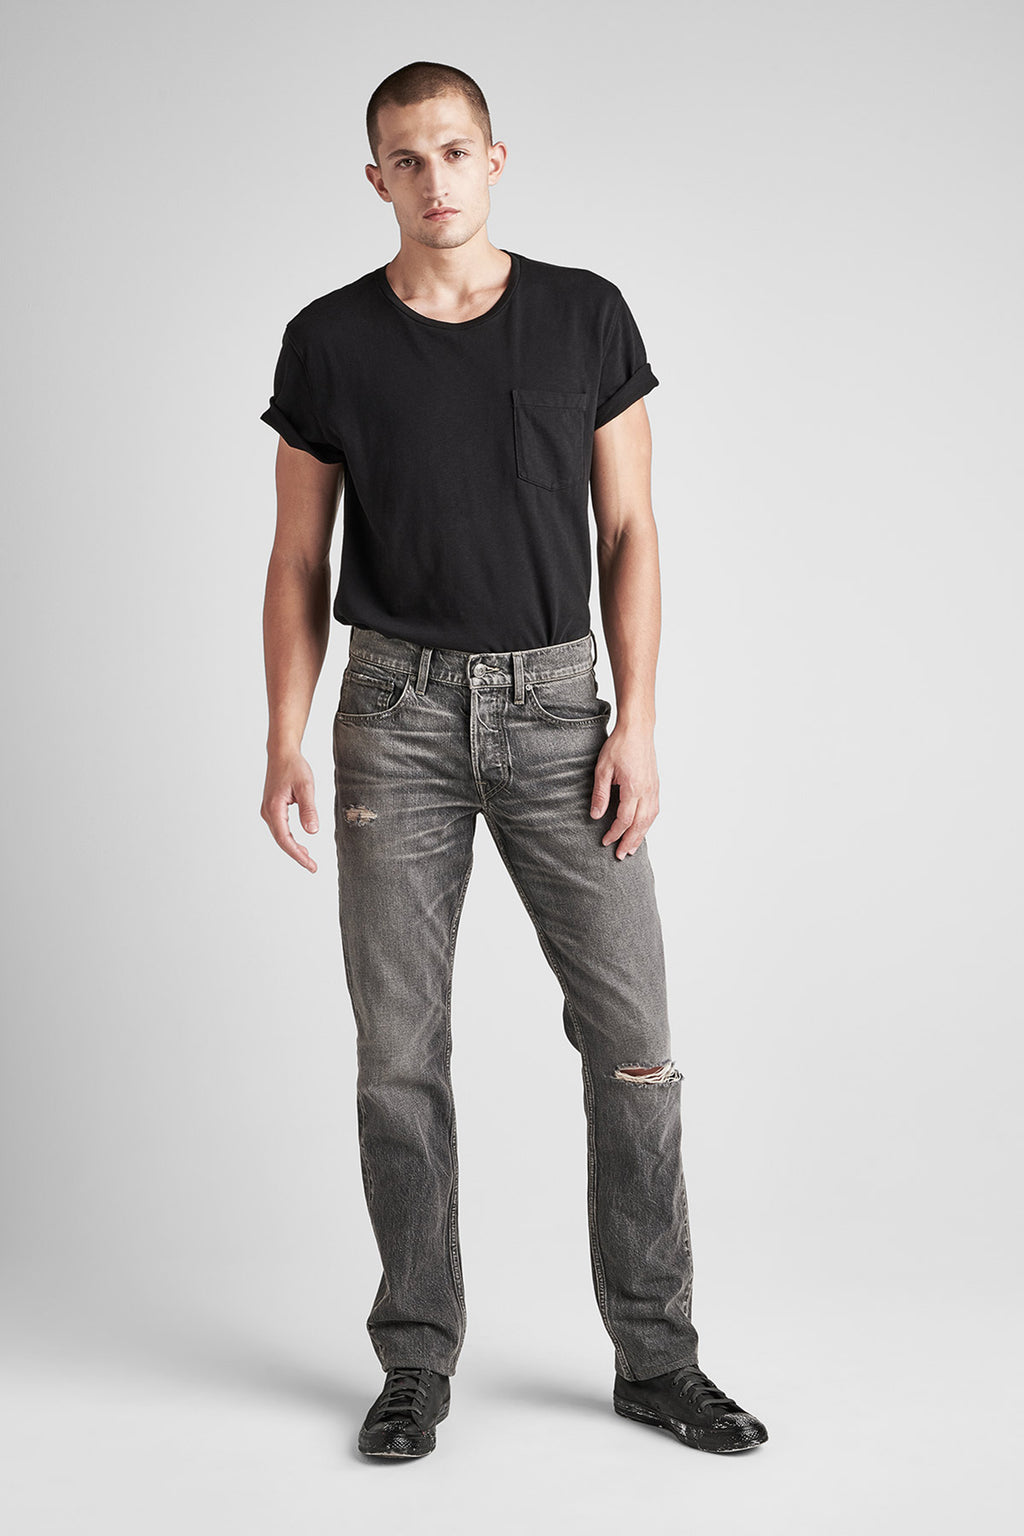 BLAKE SLIM STRAIGHT JEAN - INTERSTATE - Image 1